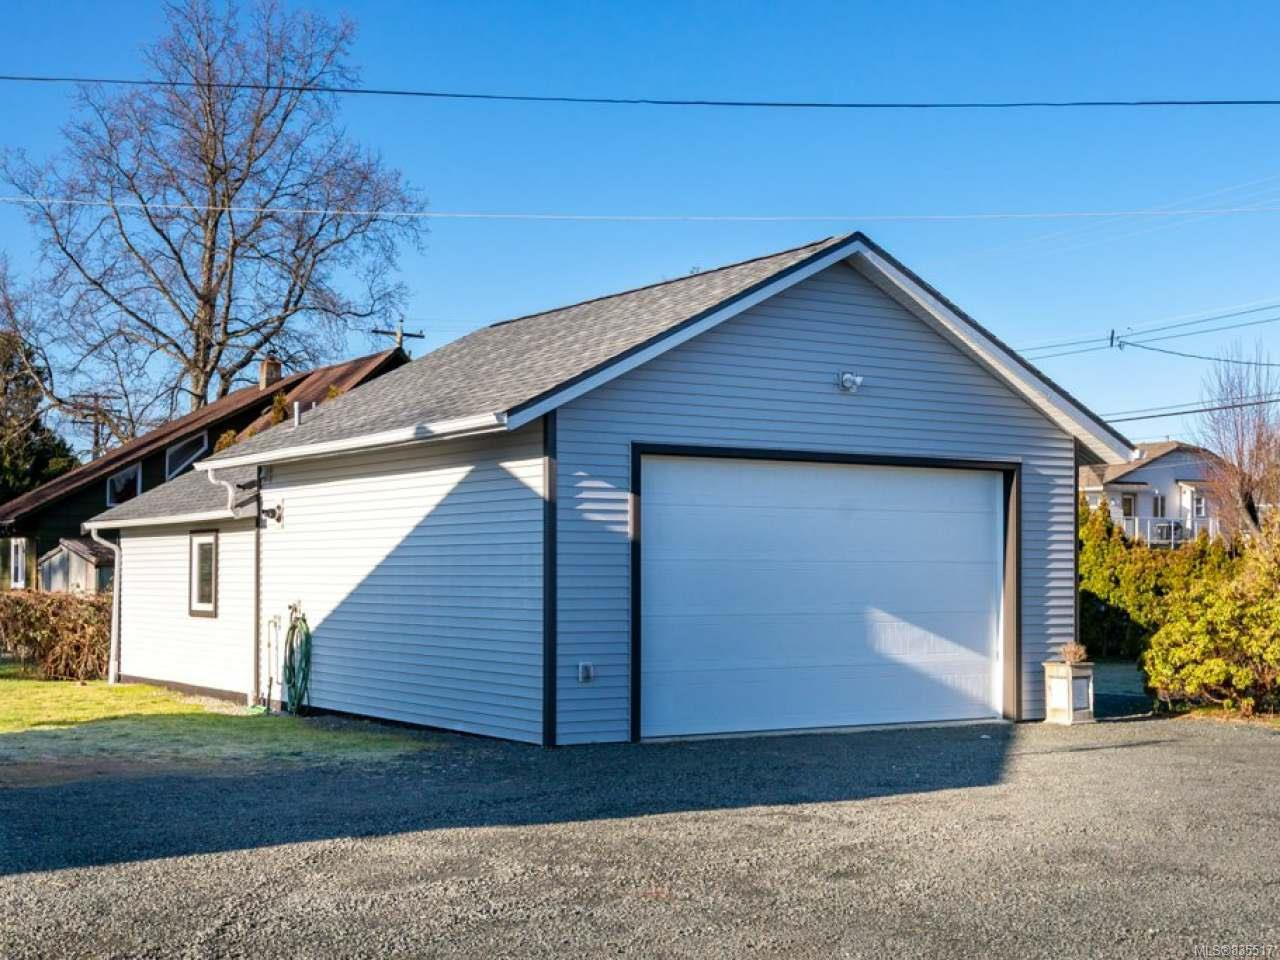 Photo 29: Photos: 109 Larwood Rd in CAMPBELL RIVER: CR Willow Point Single Family Detached for sale (Campbell River)  : MLS®# 835517